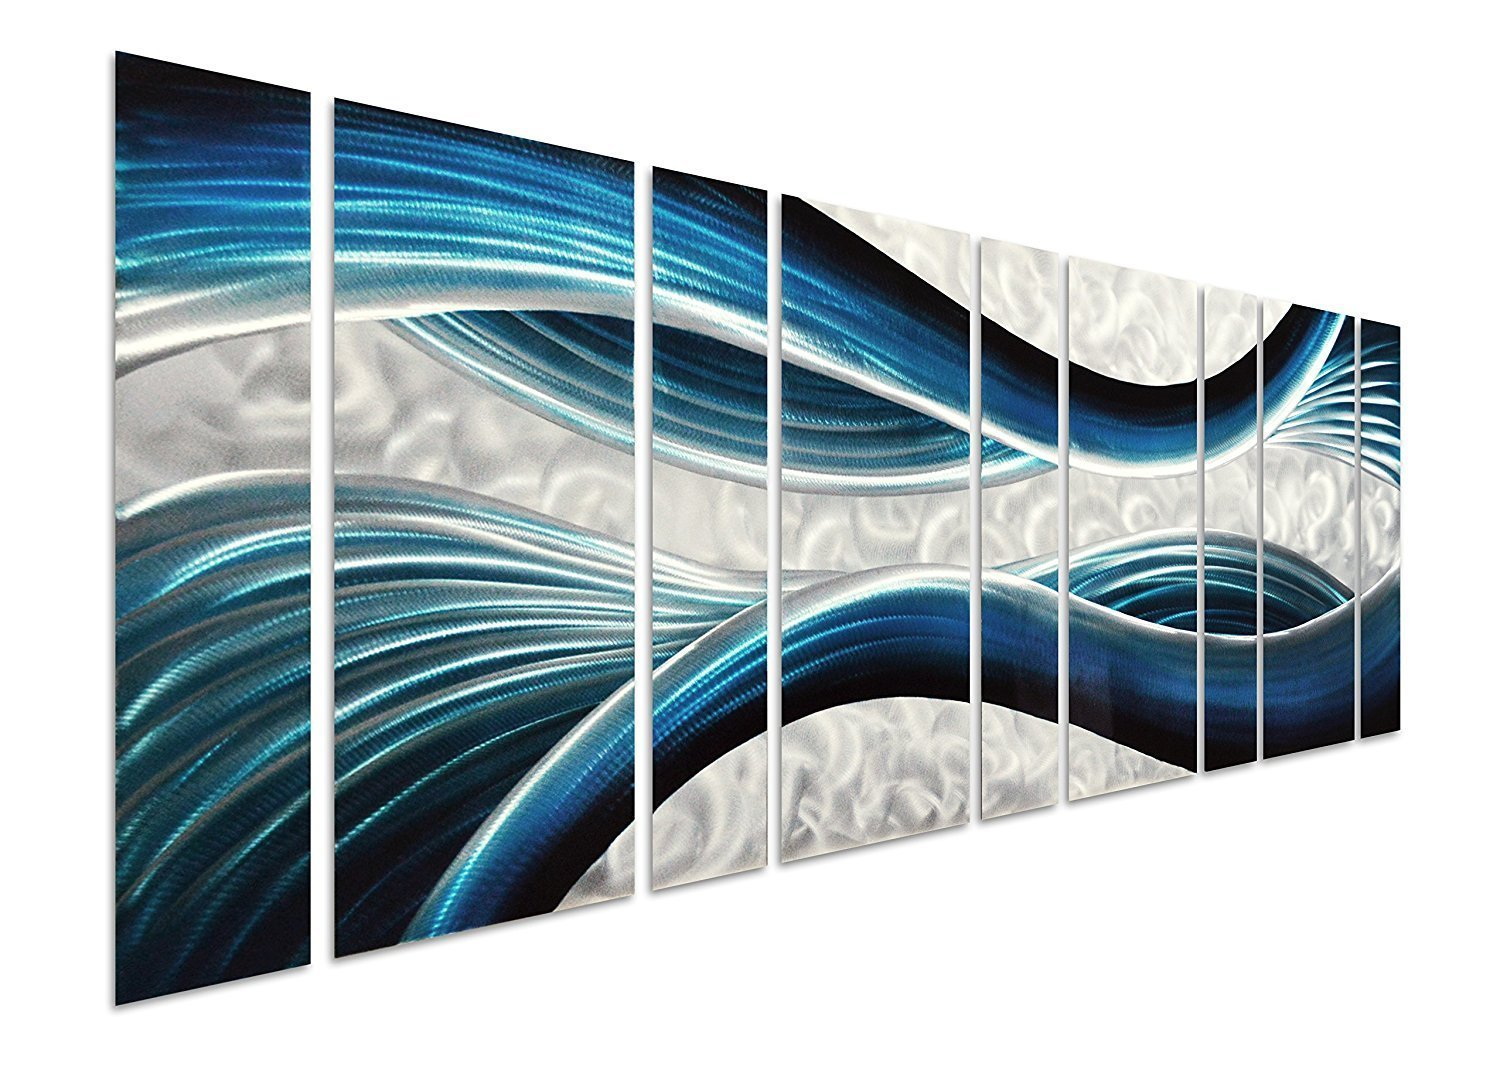 """Pure Art Blue Desire Metal Wall Art, Giant Scale Decor in Abstract Ocean Design, 9-Panels Measures 86""""x 32"""", 3D Wall Art for Modern and Contemporary Decor, Great for Indoor and Outdoor Settings"""